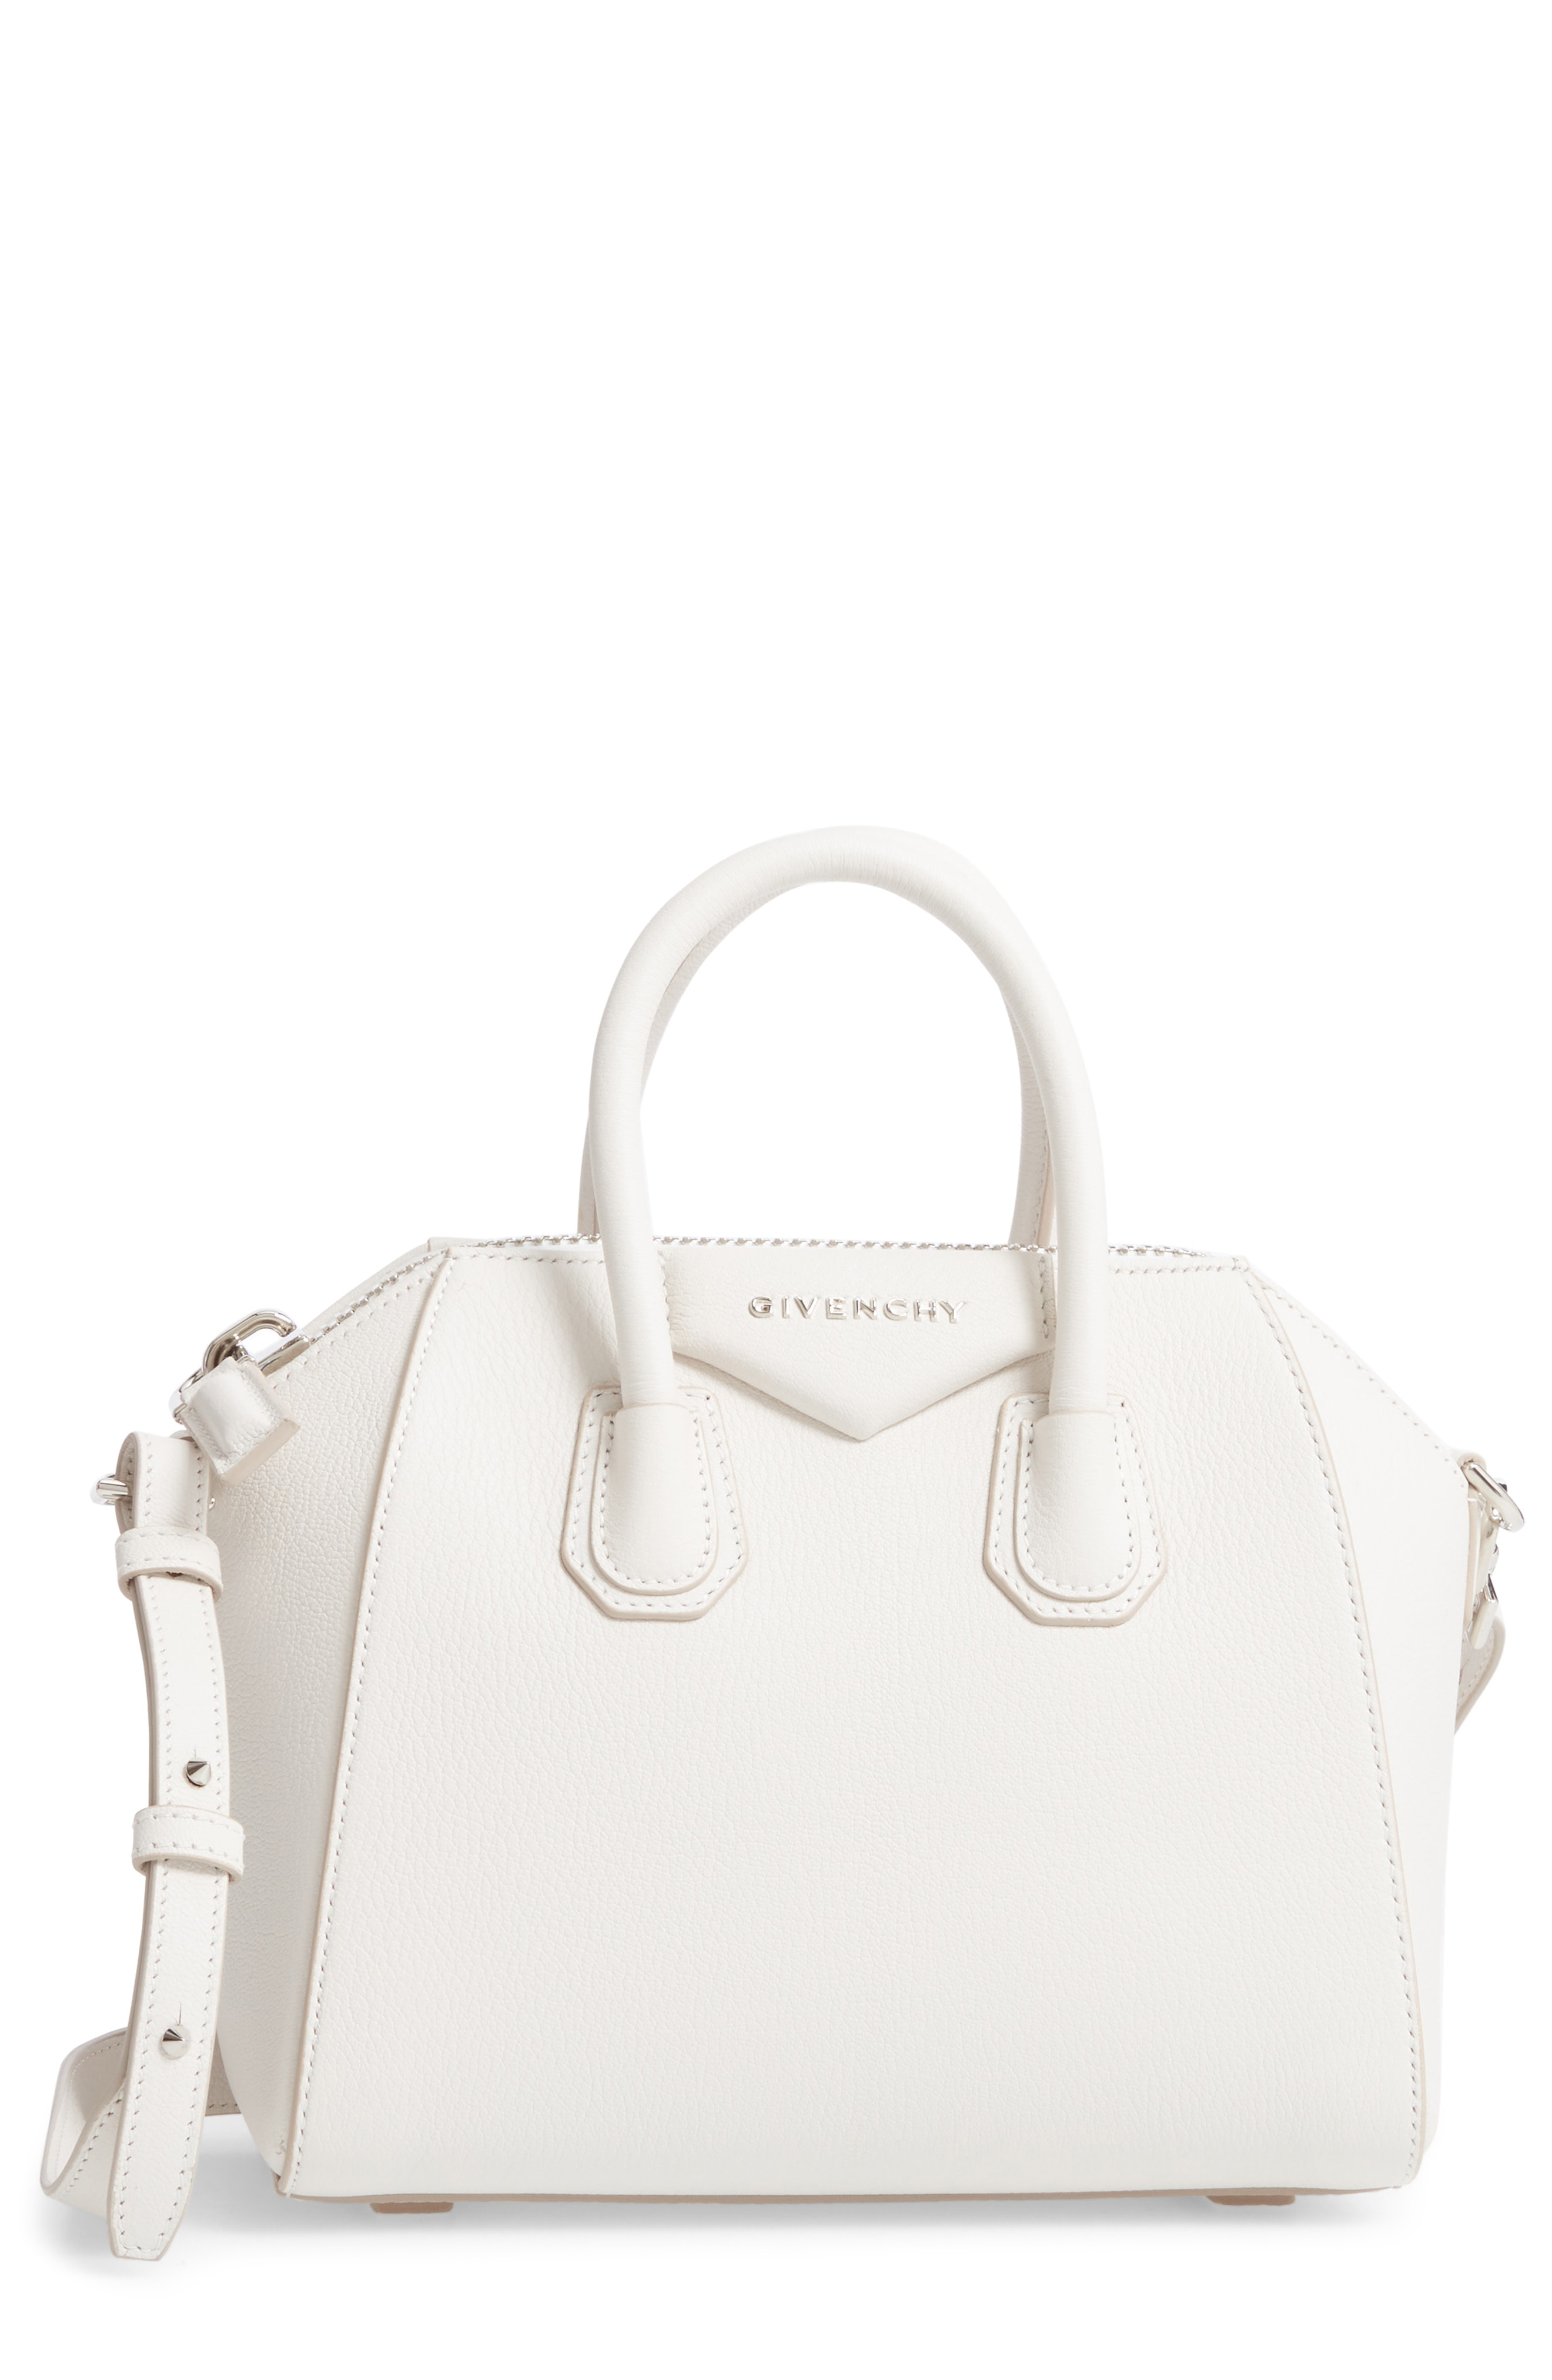 Add stylish white handbags to your fashion collection